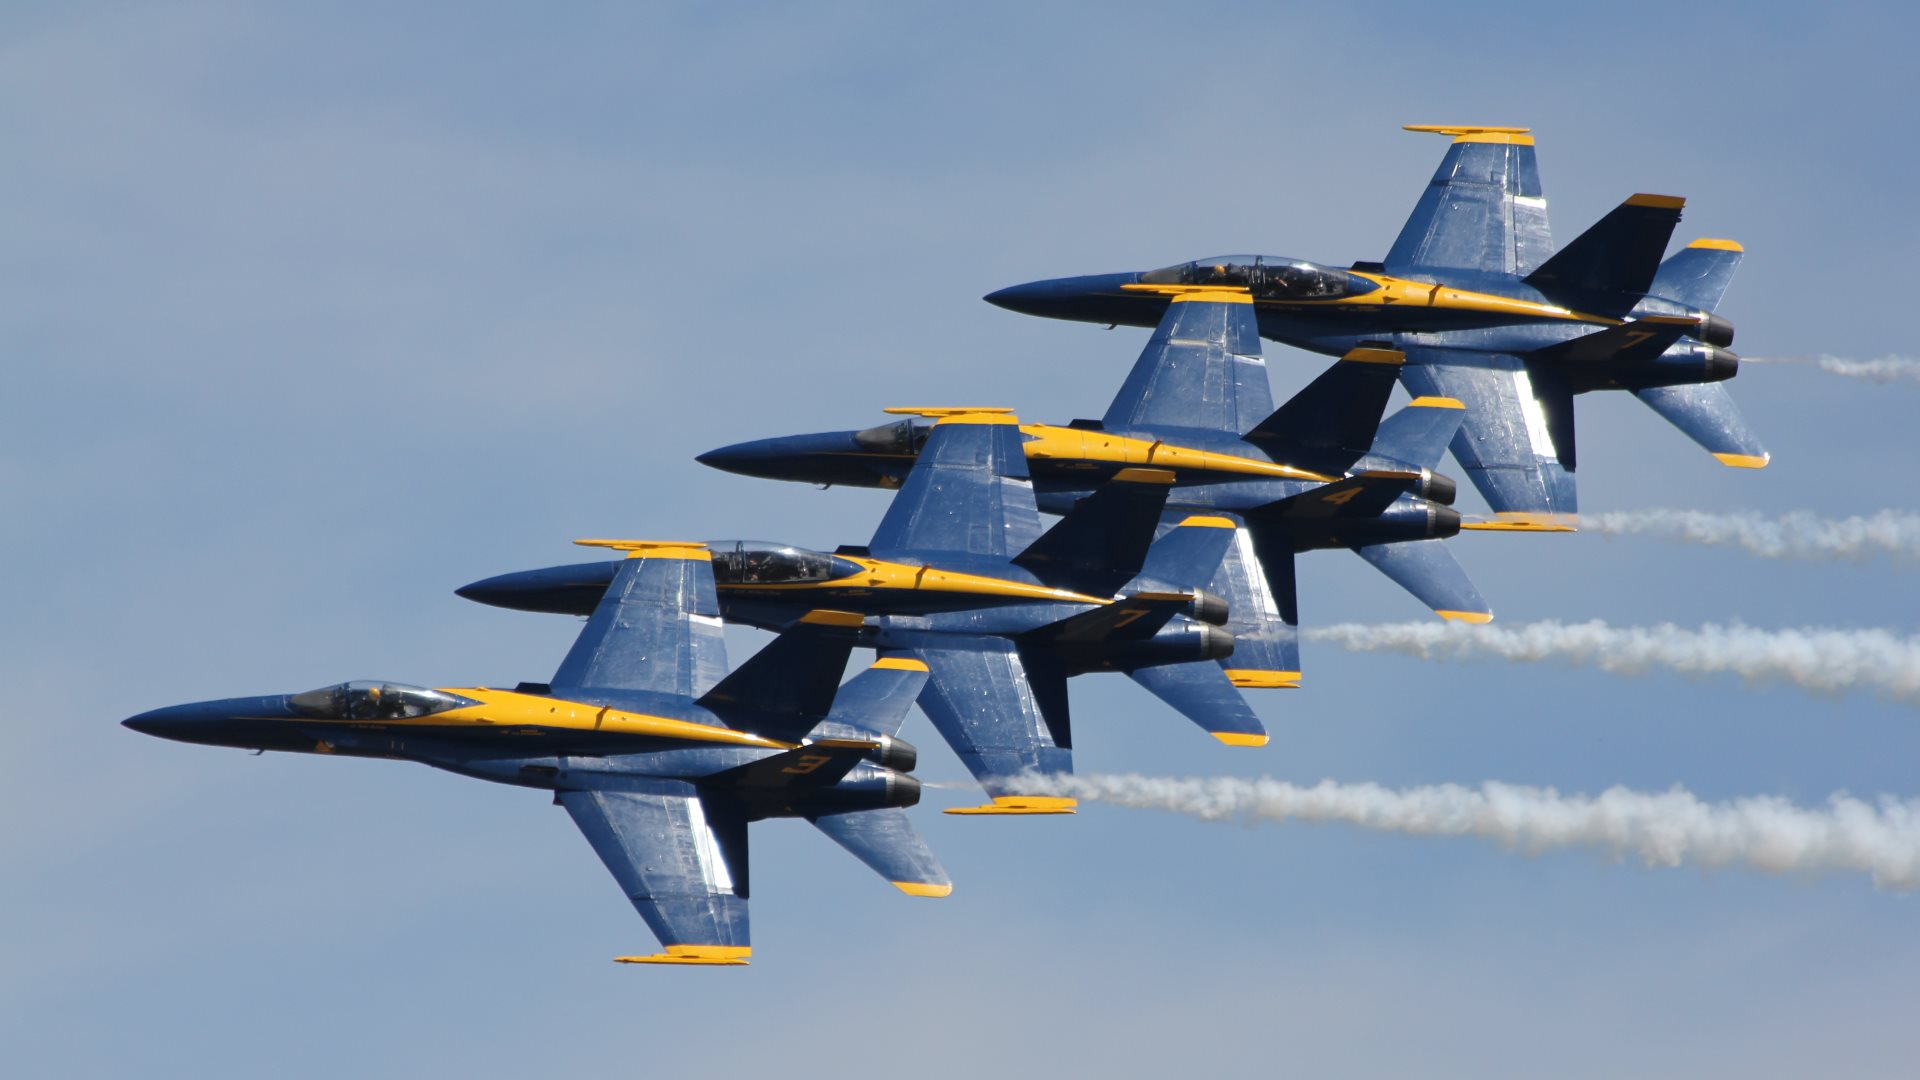 F 18 Fighter Aircraft Hd Wallpapers 183 4k